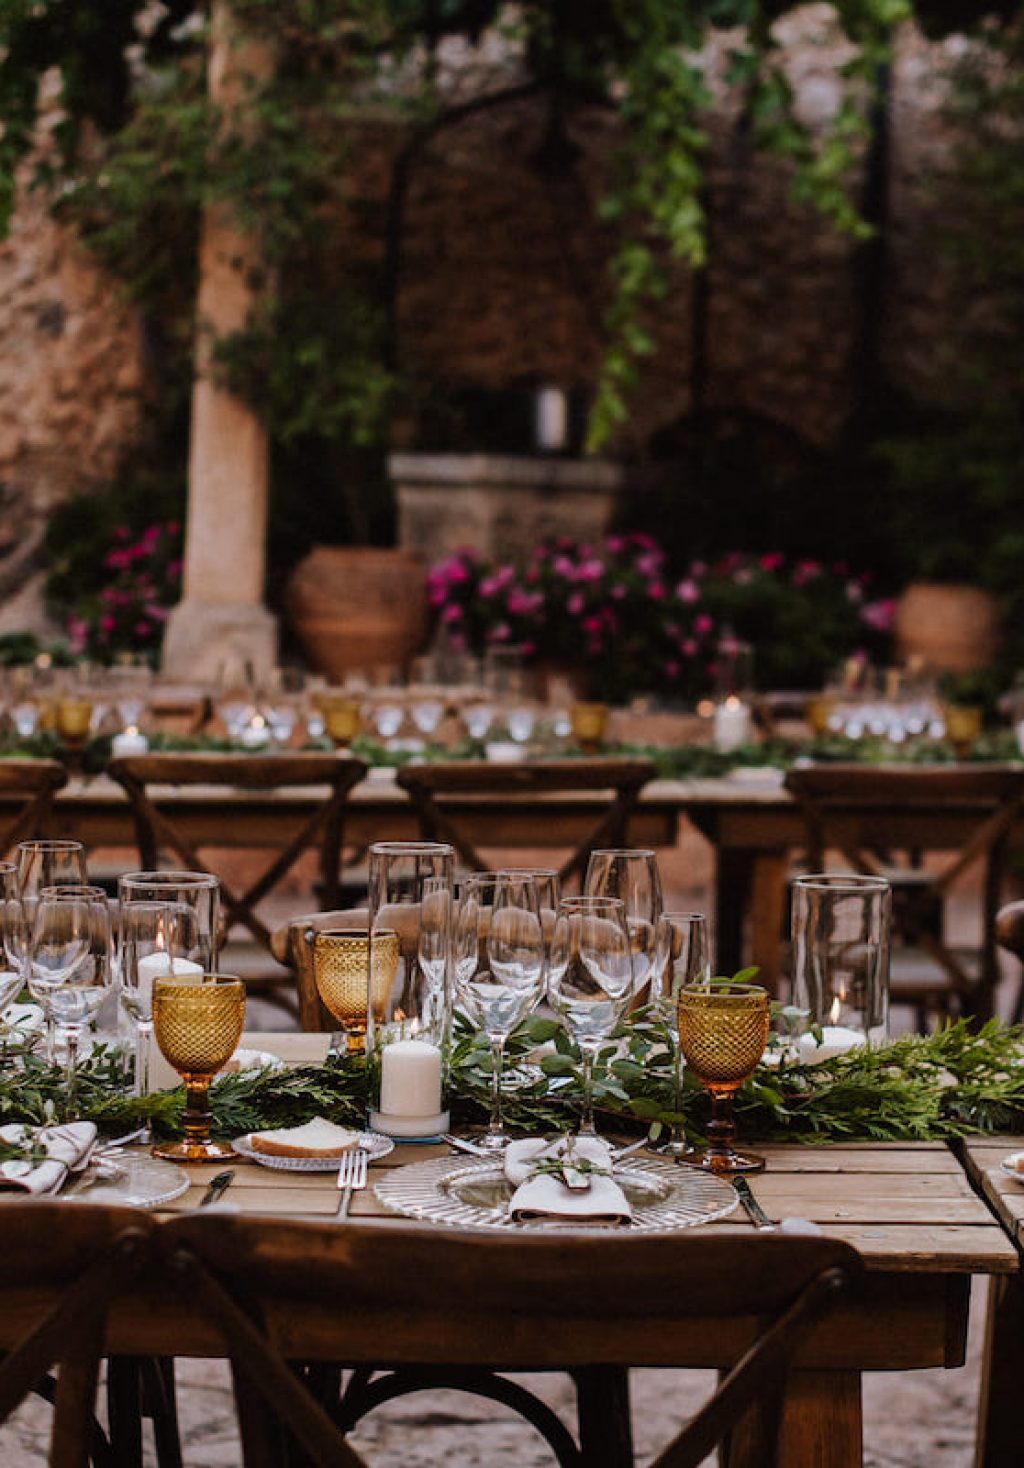 Mallorca courtyard for wedding setting in Mallorca